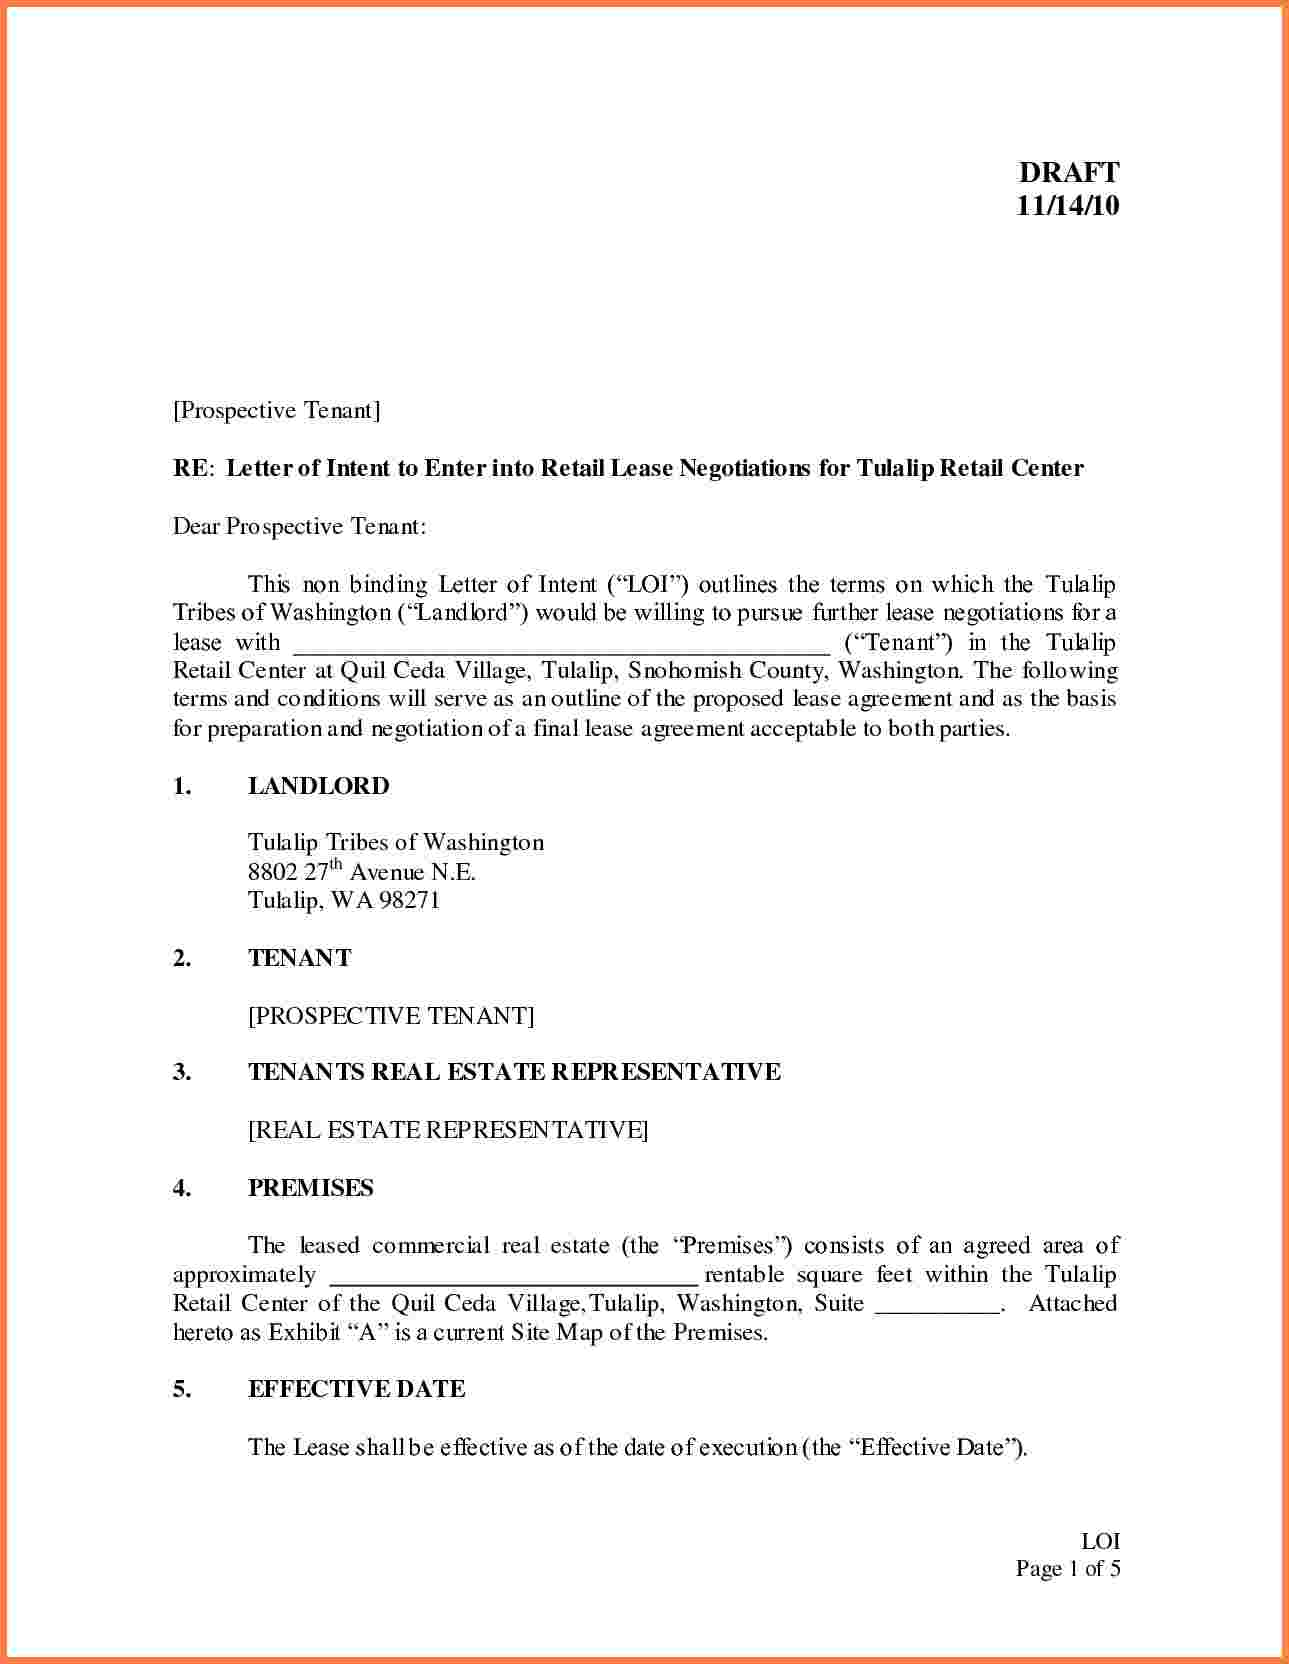 Commercial Real Estate Lease Letter Of Intent Template - Letter Intent Real Estate Lease Example Restaurant Sample Renewal